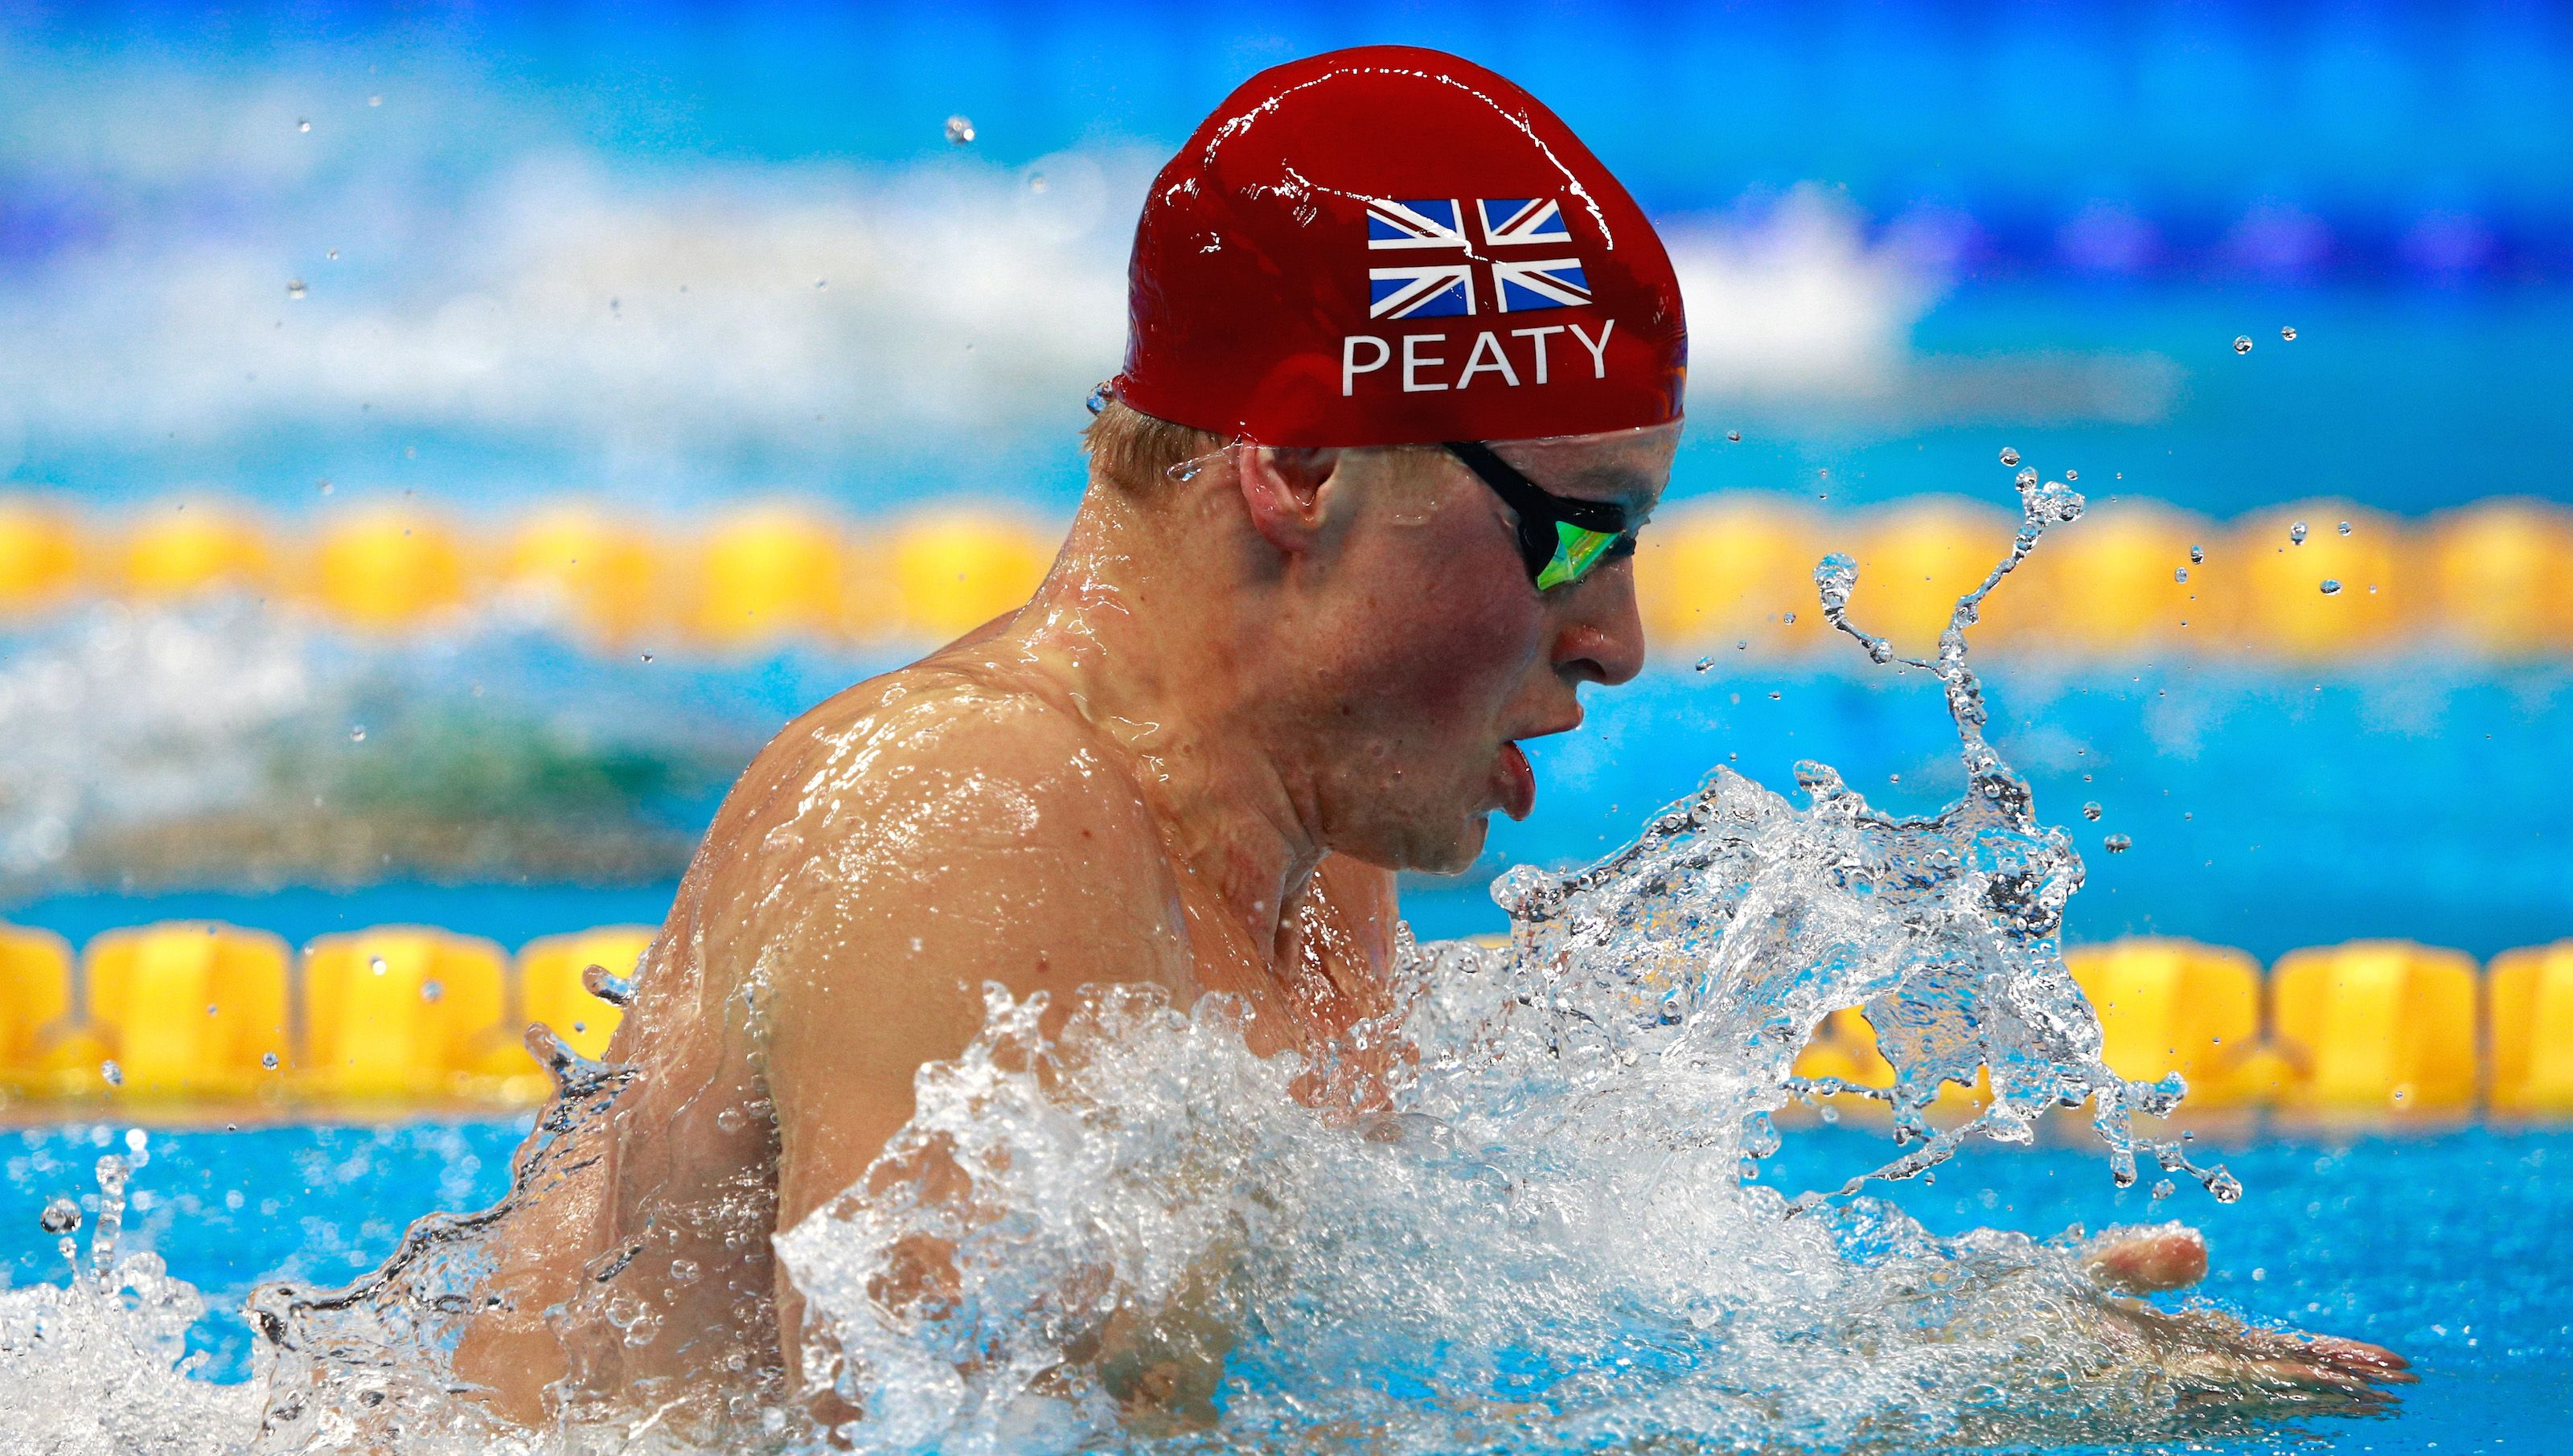 Team GBu0027s Adam Peaty Swimming Towards A New World Record At Rio 2016